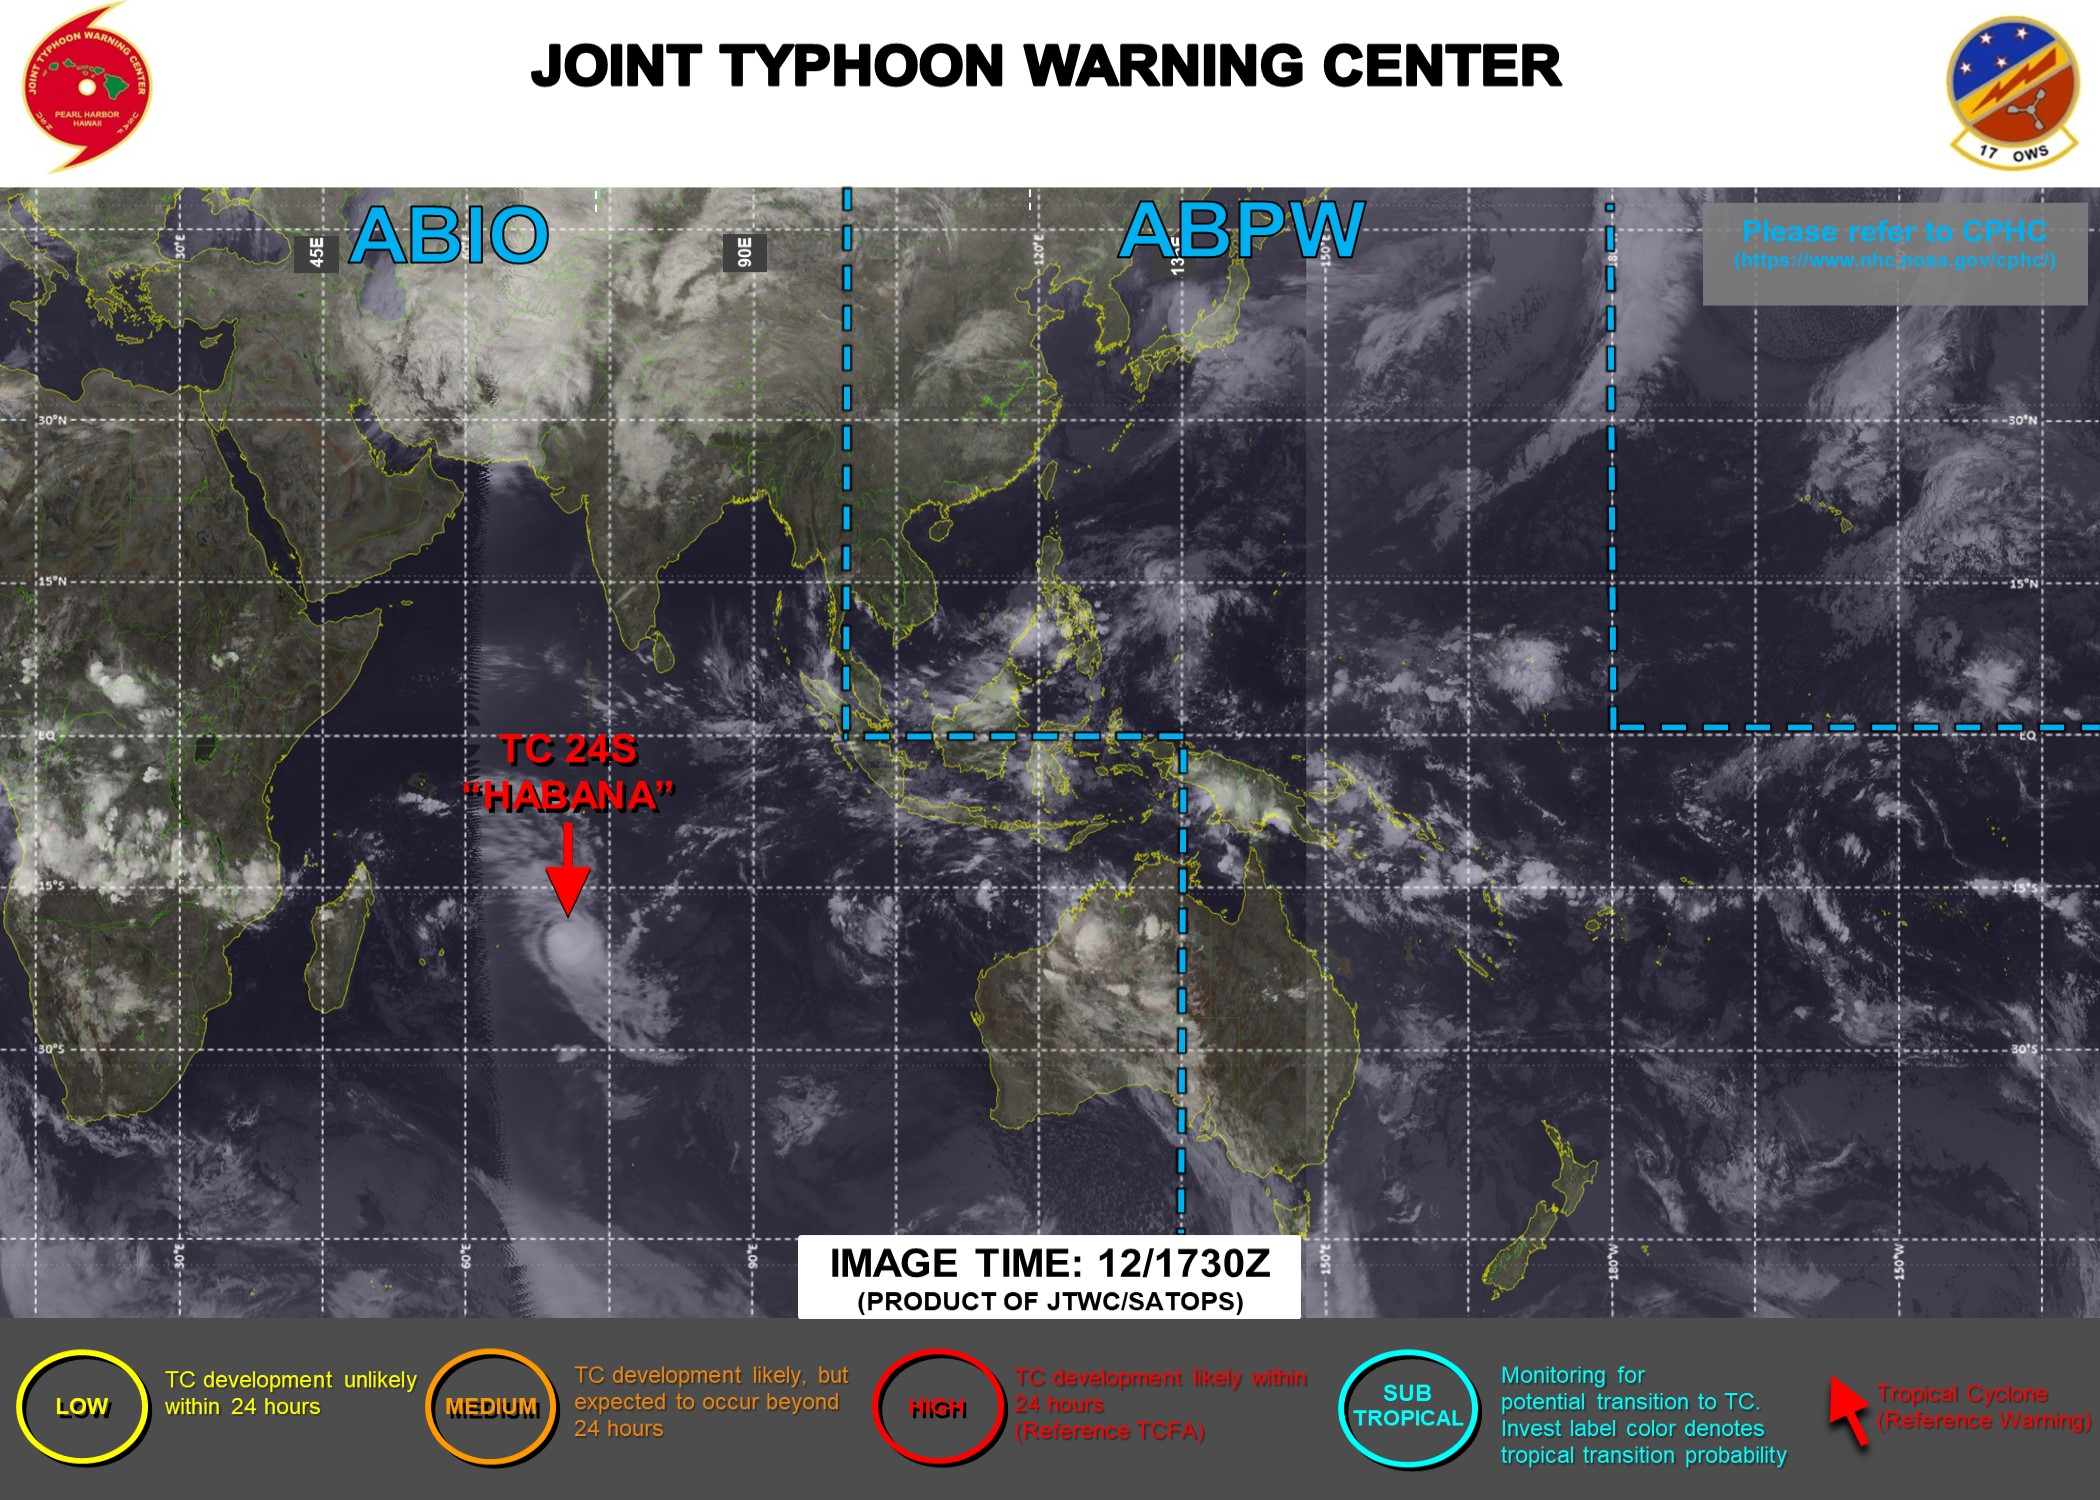 13/00UTC. JTWC HAS BEEN ISSUING 12HOURLY WARNINGS ON TC 24S(HABANA) ALONG WITH 3HOURLY SATELLITE BULLETINS.